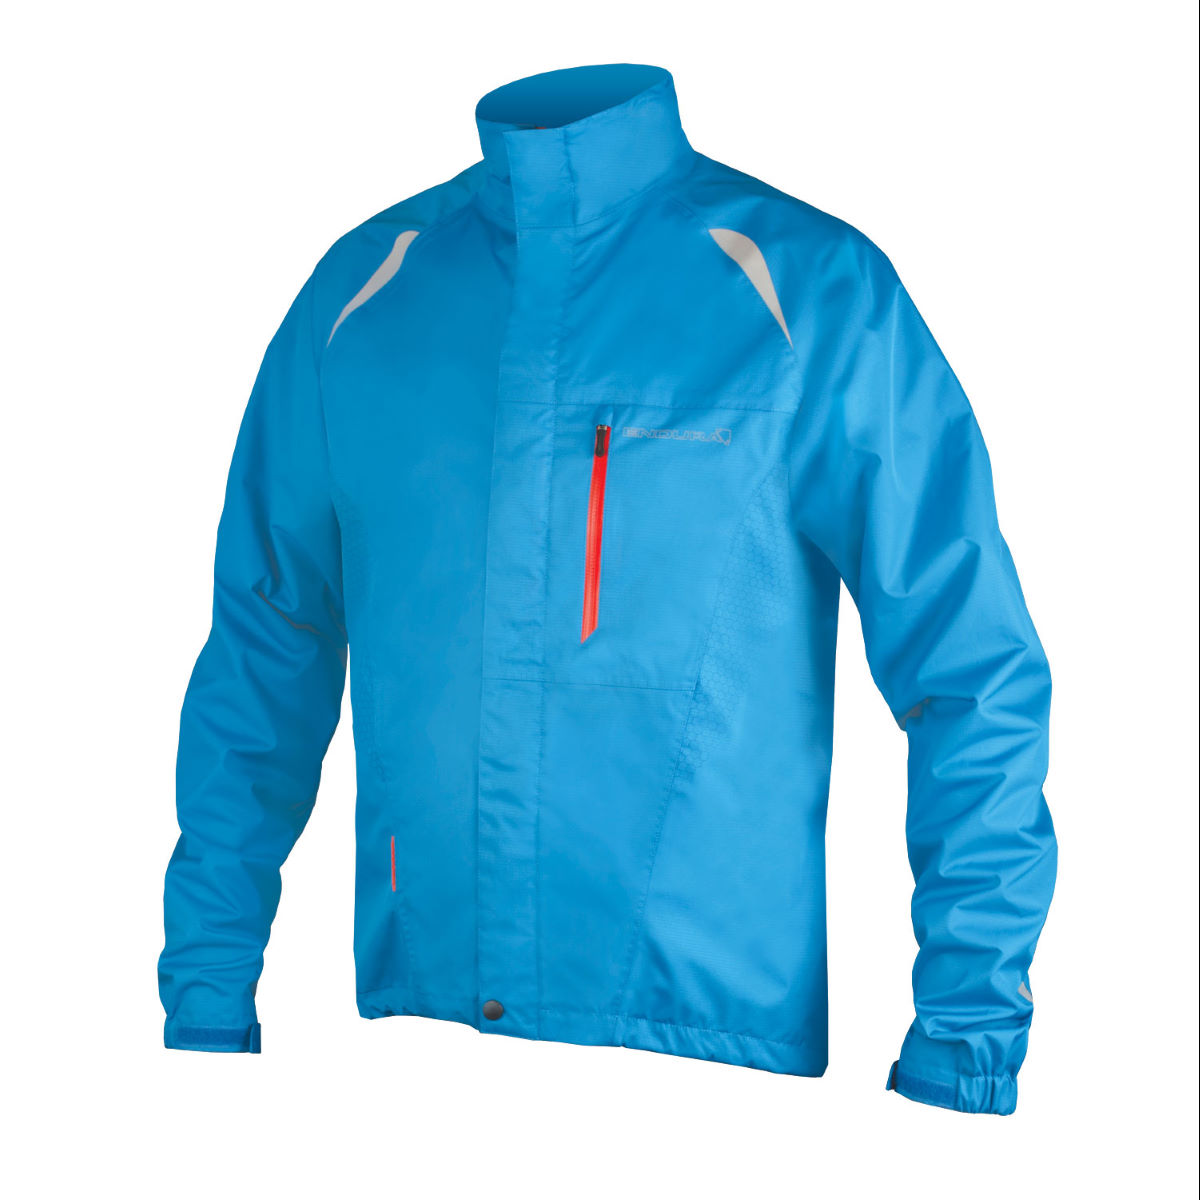 Endura Gridlock II Jacket - L Black | Cycling Waterproof Jackets